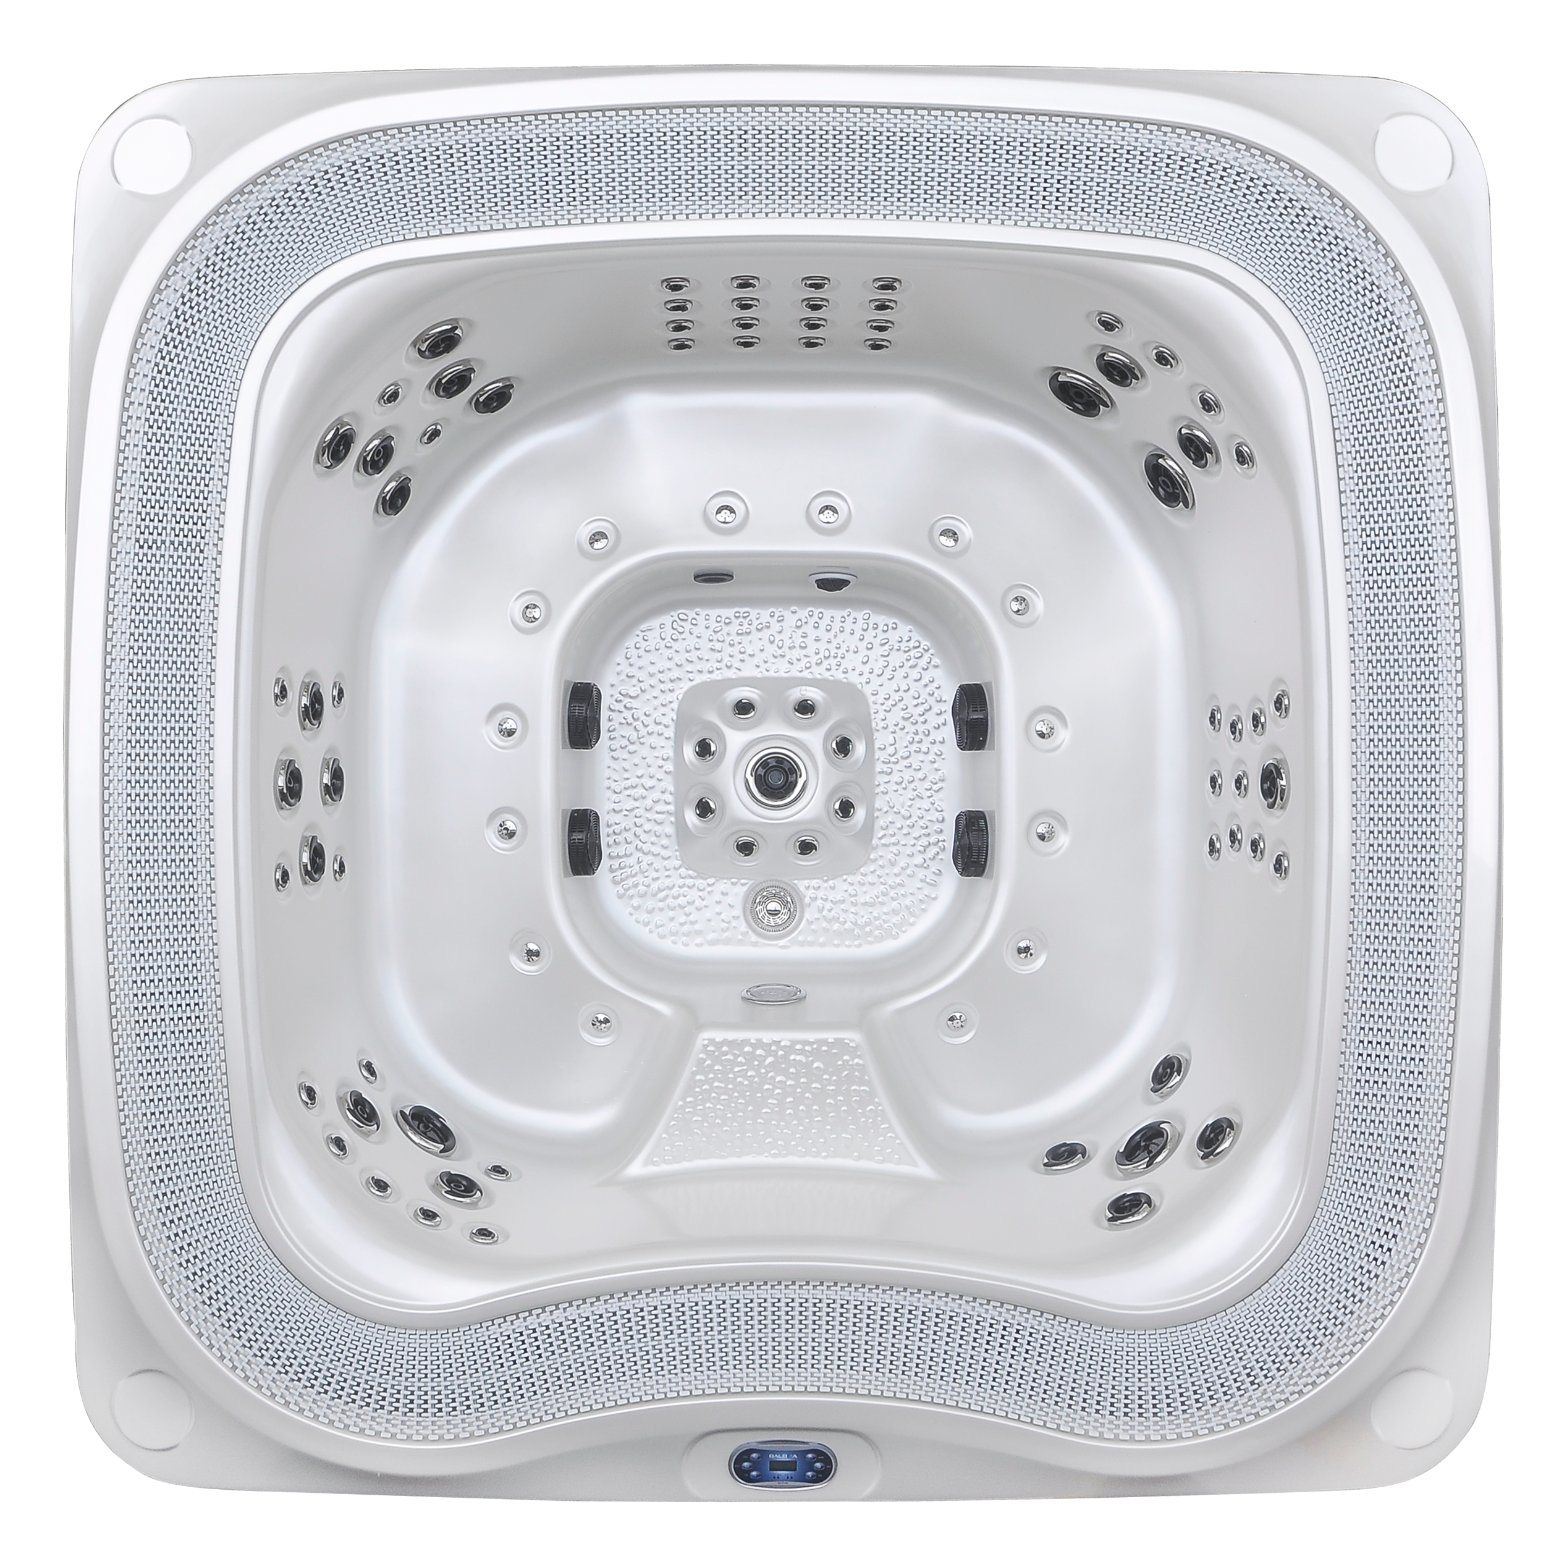 Hot Item Kingston Overflow Spa Bath And Shower Combination Spa Or Whirlpool Baths Suppliers World Ktg Jcs 88